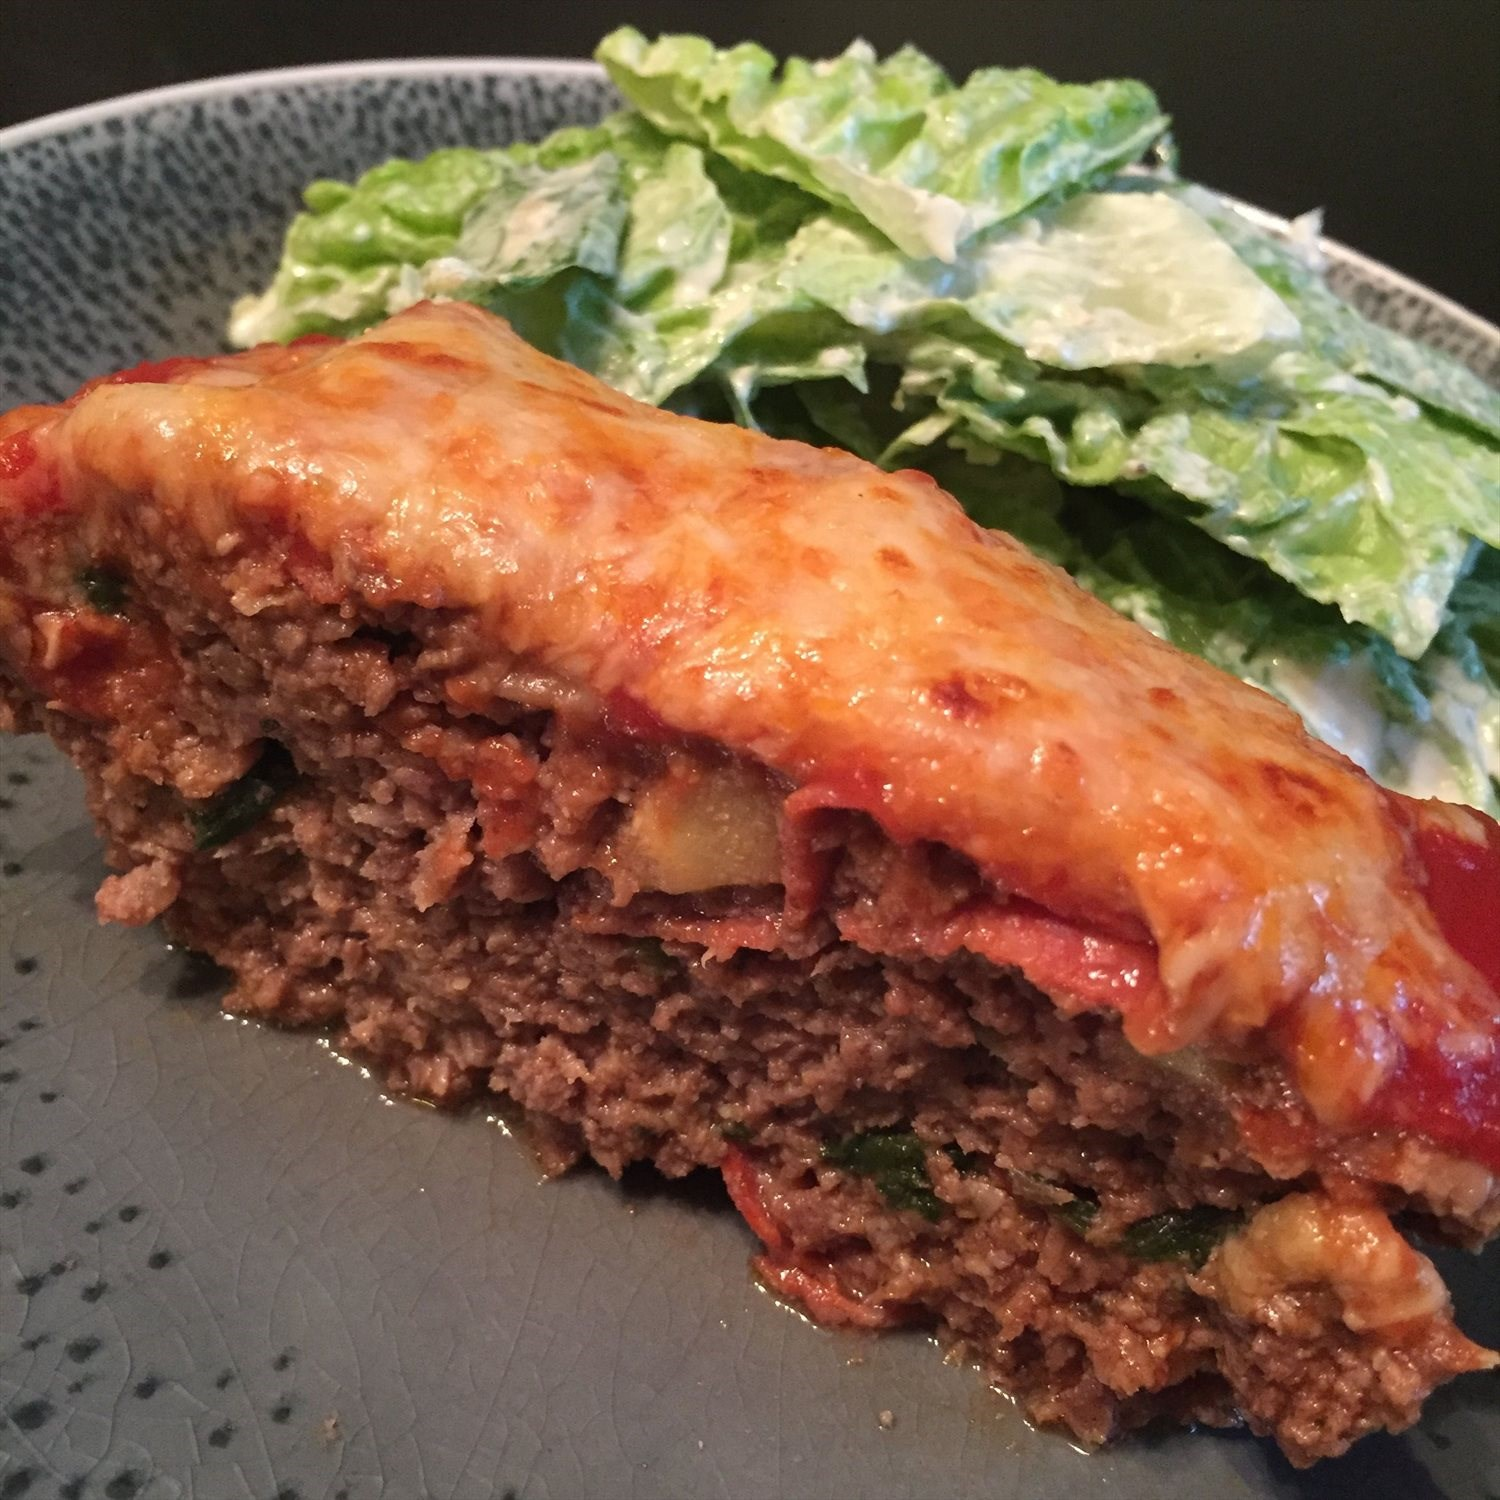 Spinach Artichoke Pepperoni Meatloaf